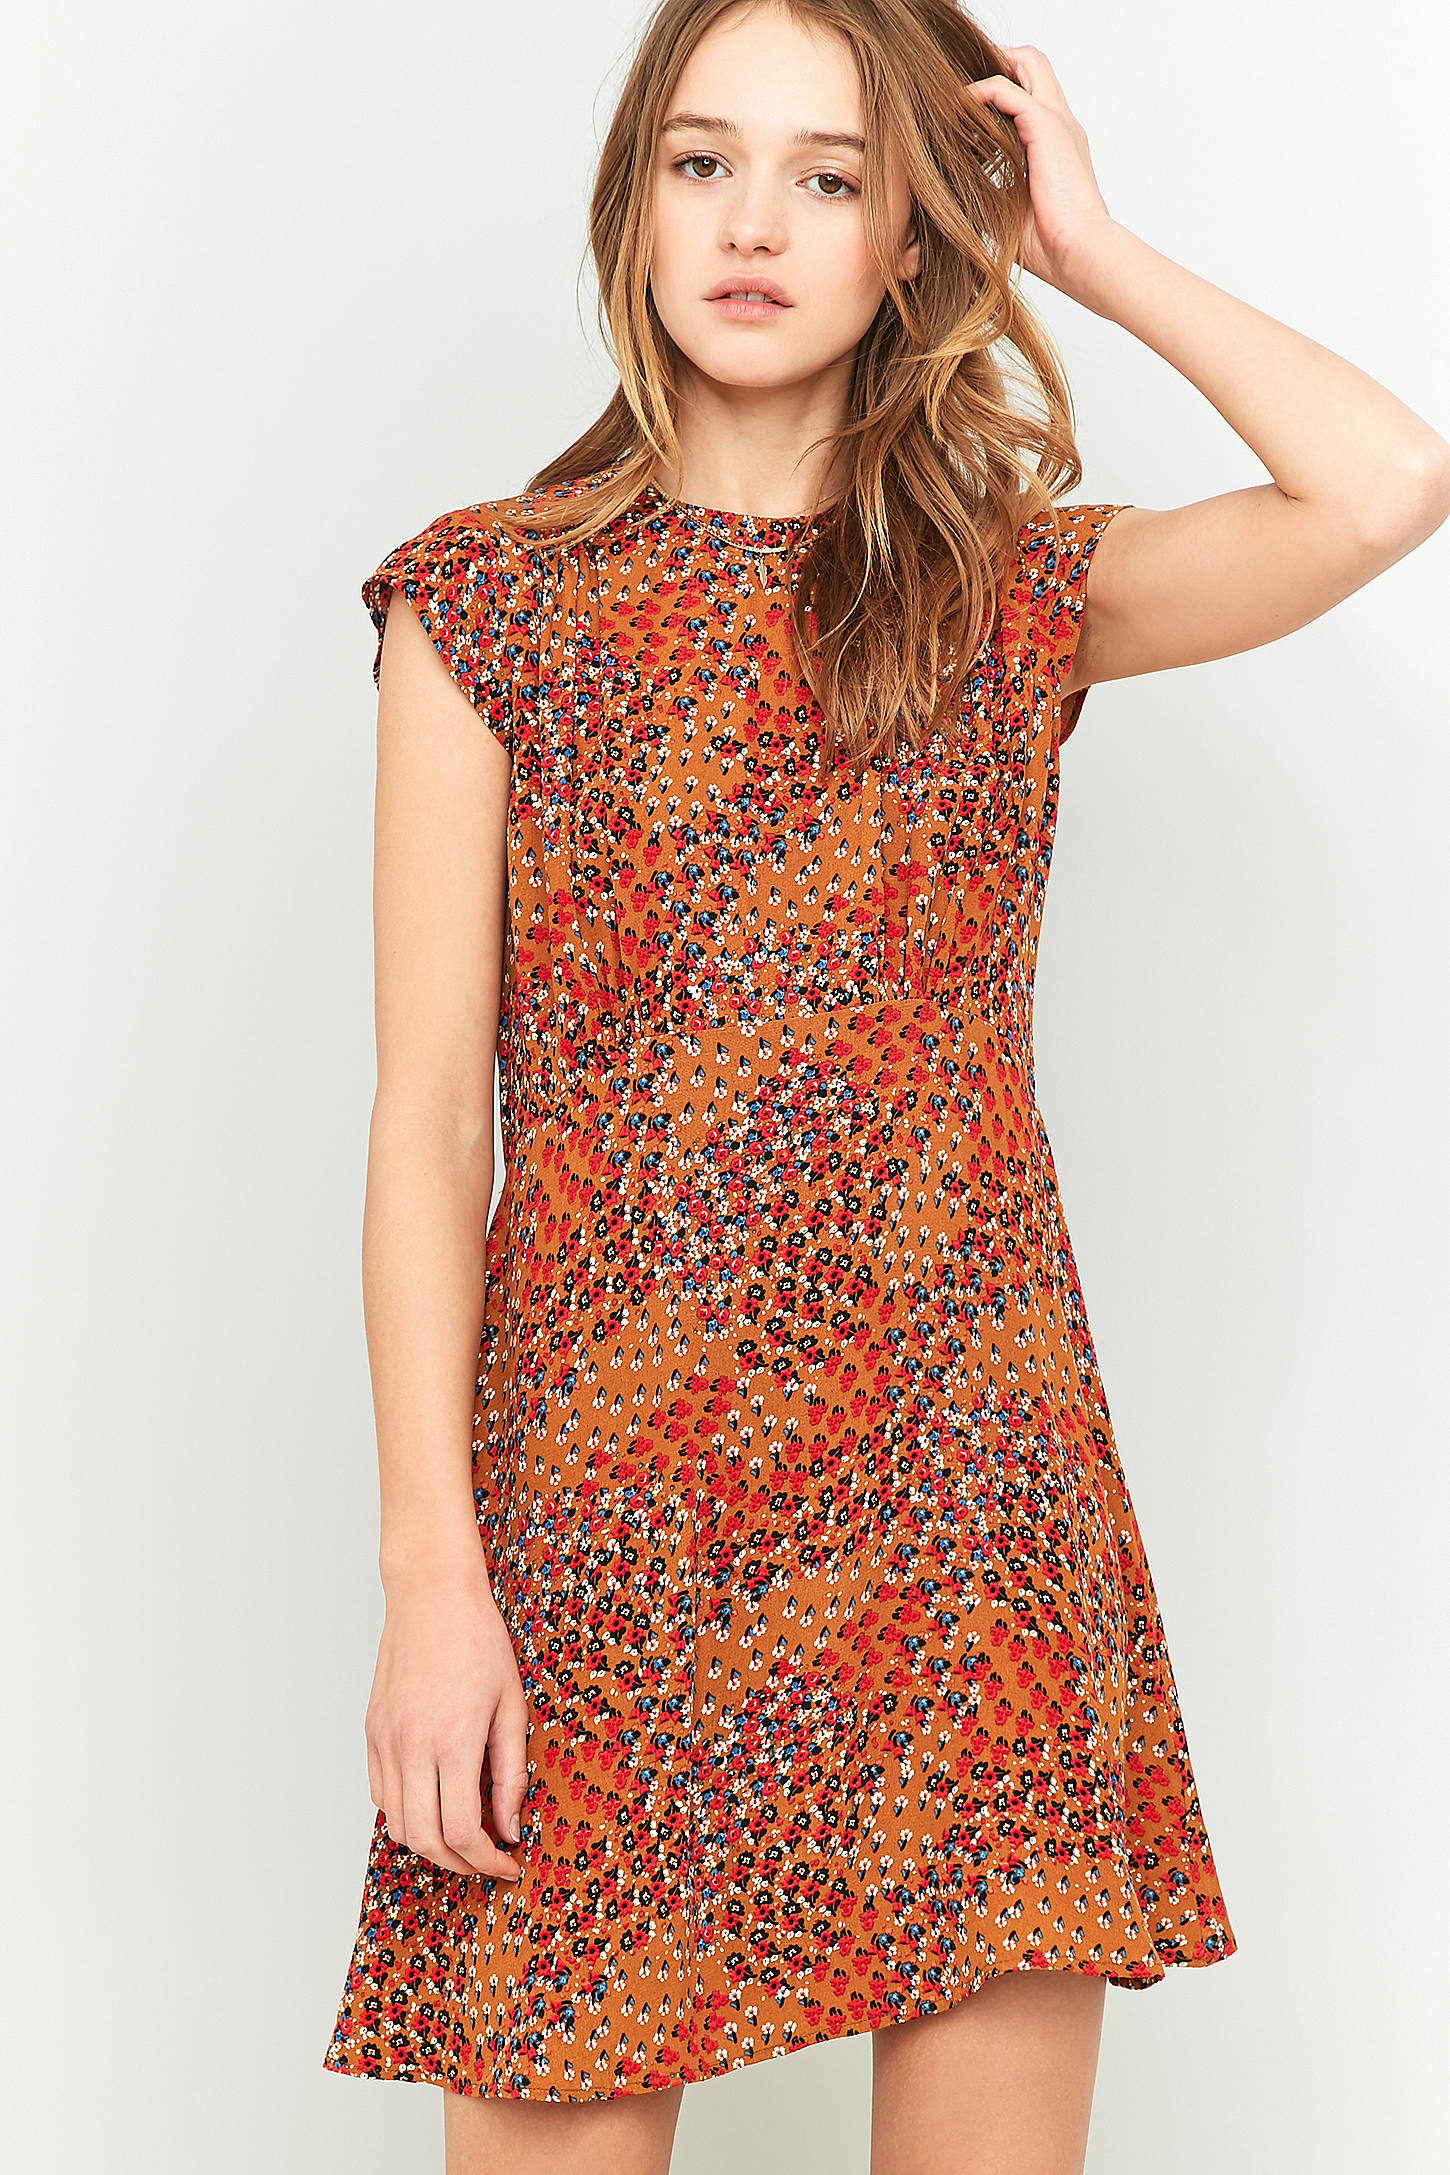 Urban outfitters floral dress - Avis urban dressing ...